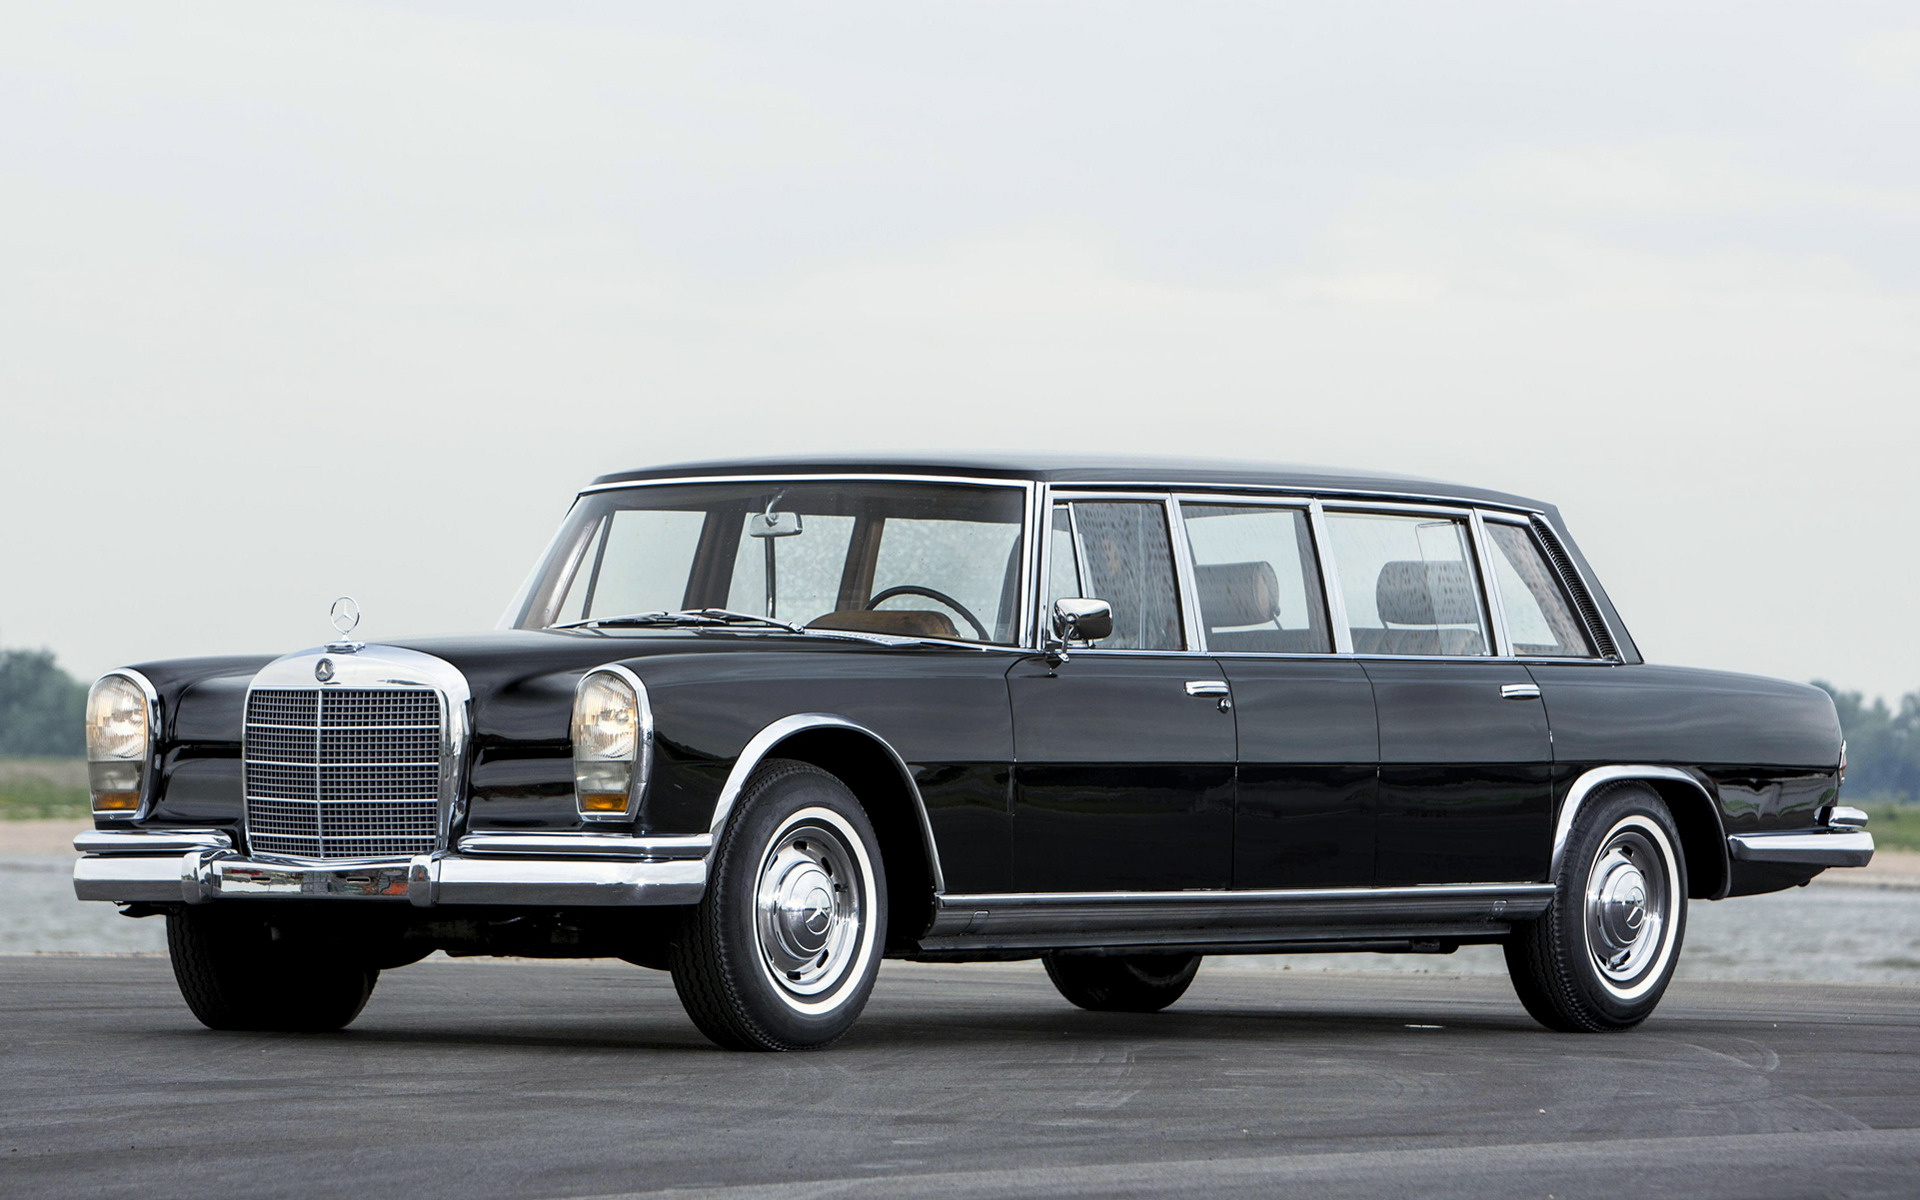 Toyota Of Pullman >> Mercedes-Benz 600 Pullman (1964) Wallpapers and HD Images ...